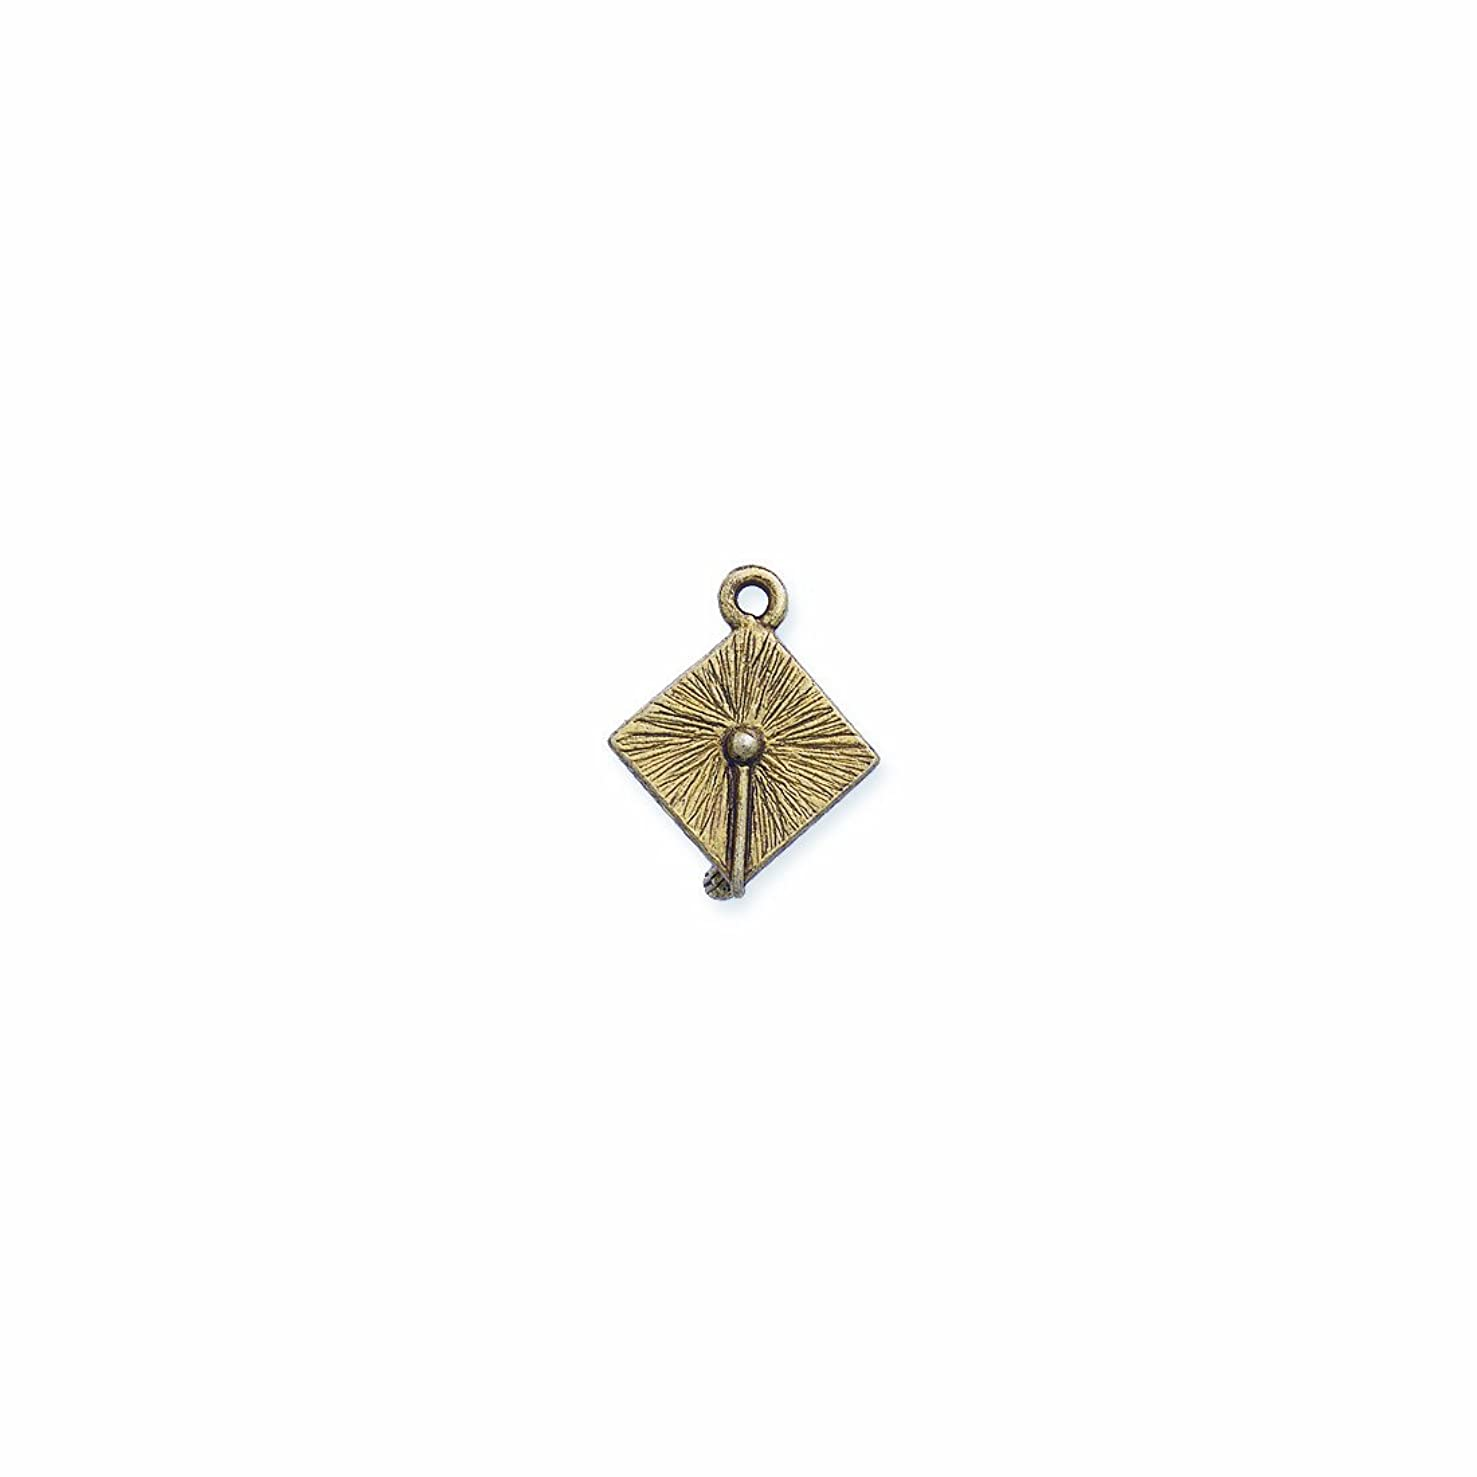 Shipwreck Beads Pewter Graduation Cap Charm, Antique Gold, 17 by 22mm, 2-Piece